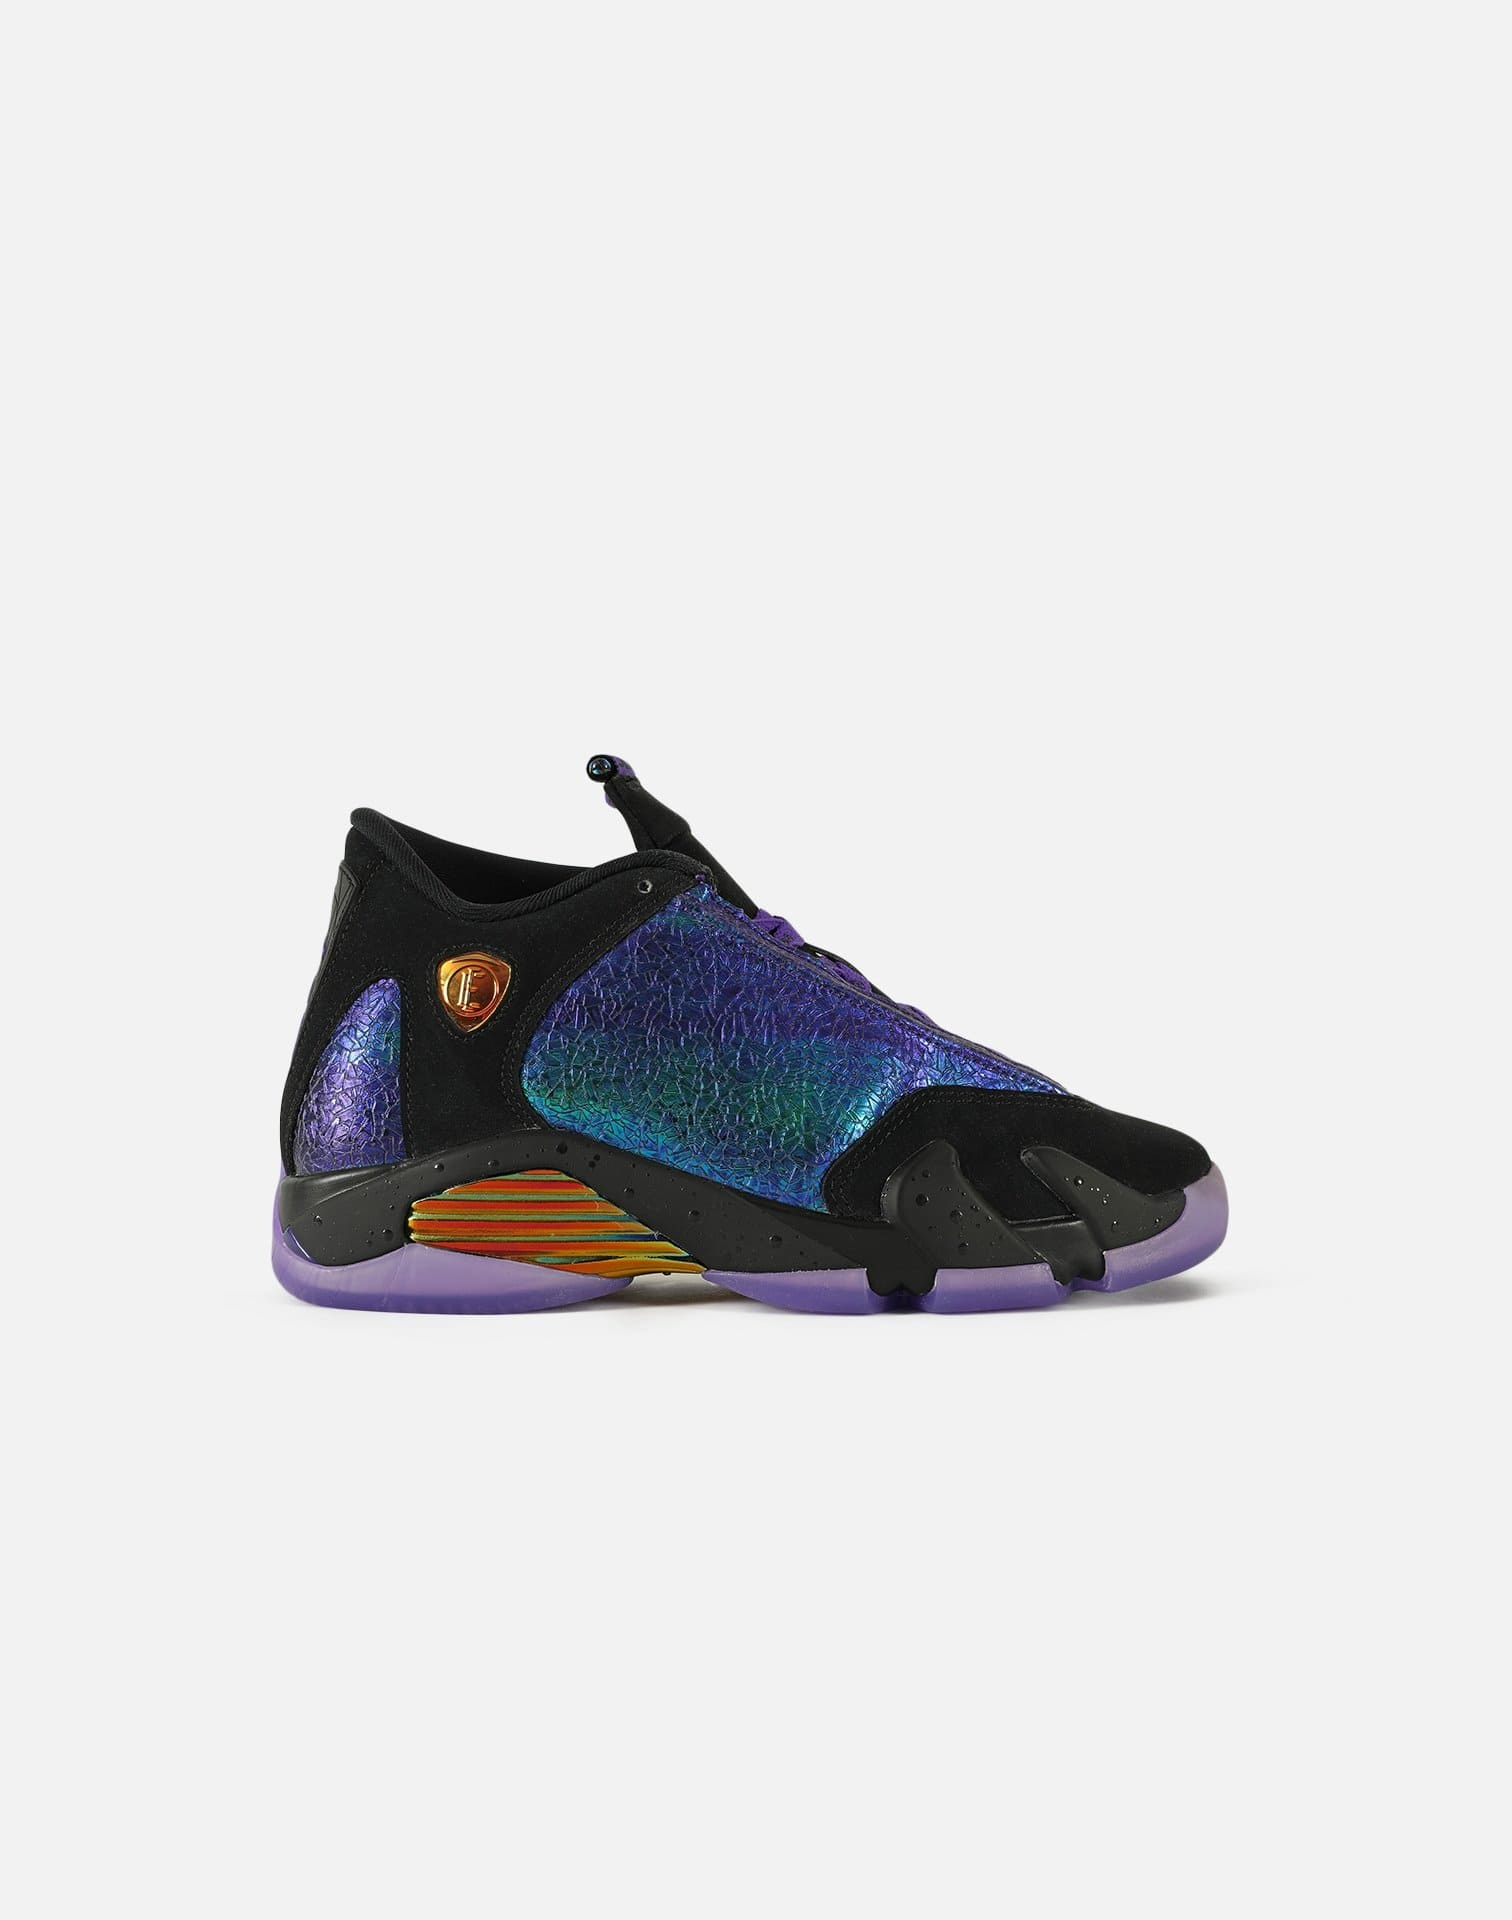 Nike AIR JORDAN RETRO 14 DOERNBECHER 'ETHAN' GRADE-SCHOOL